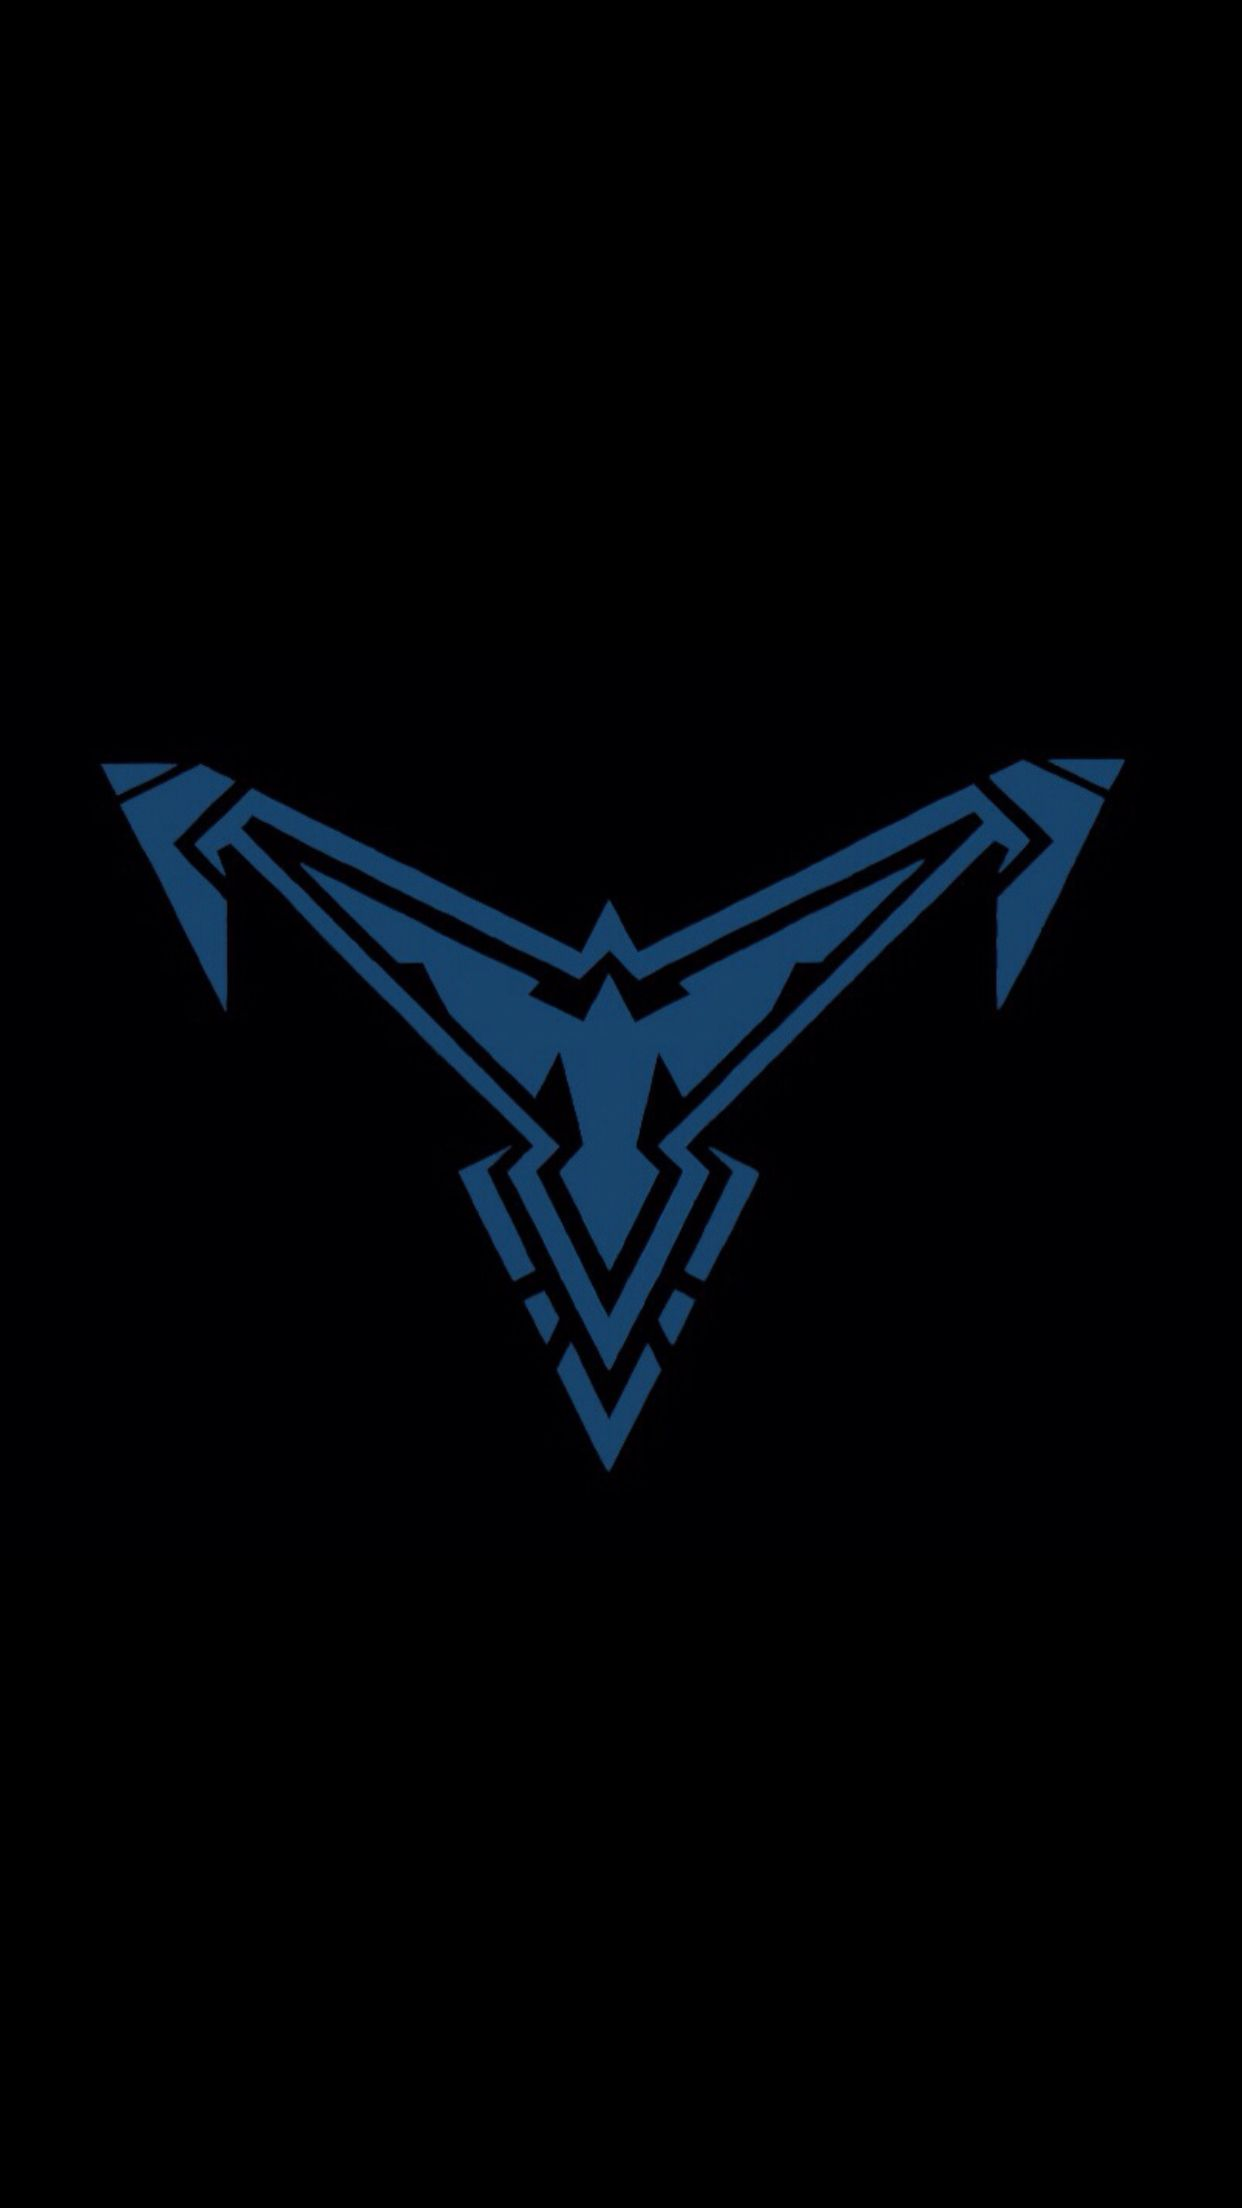 Best nightwing symbol ive seen nightwing pinterest symbols best nightwing symbol ive seen nightwing pinterest symbols batman and dc universe buycottarizona Choice Image